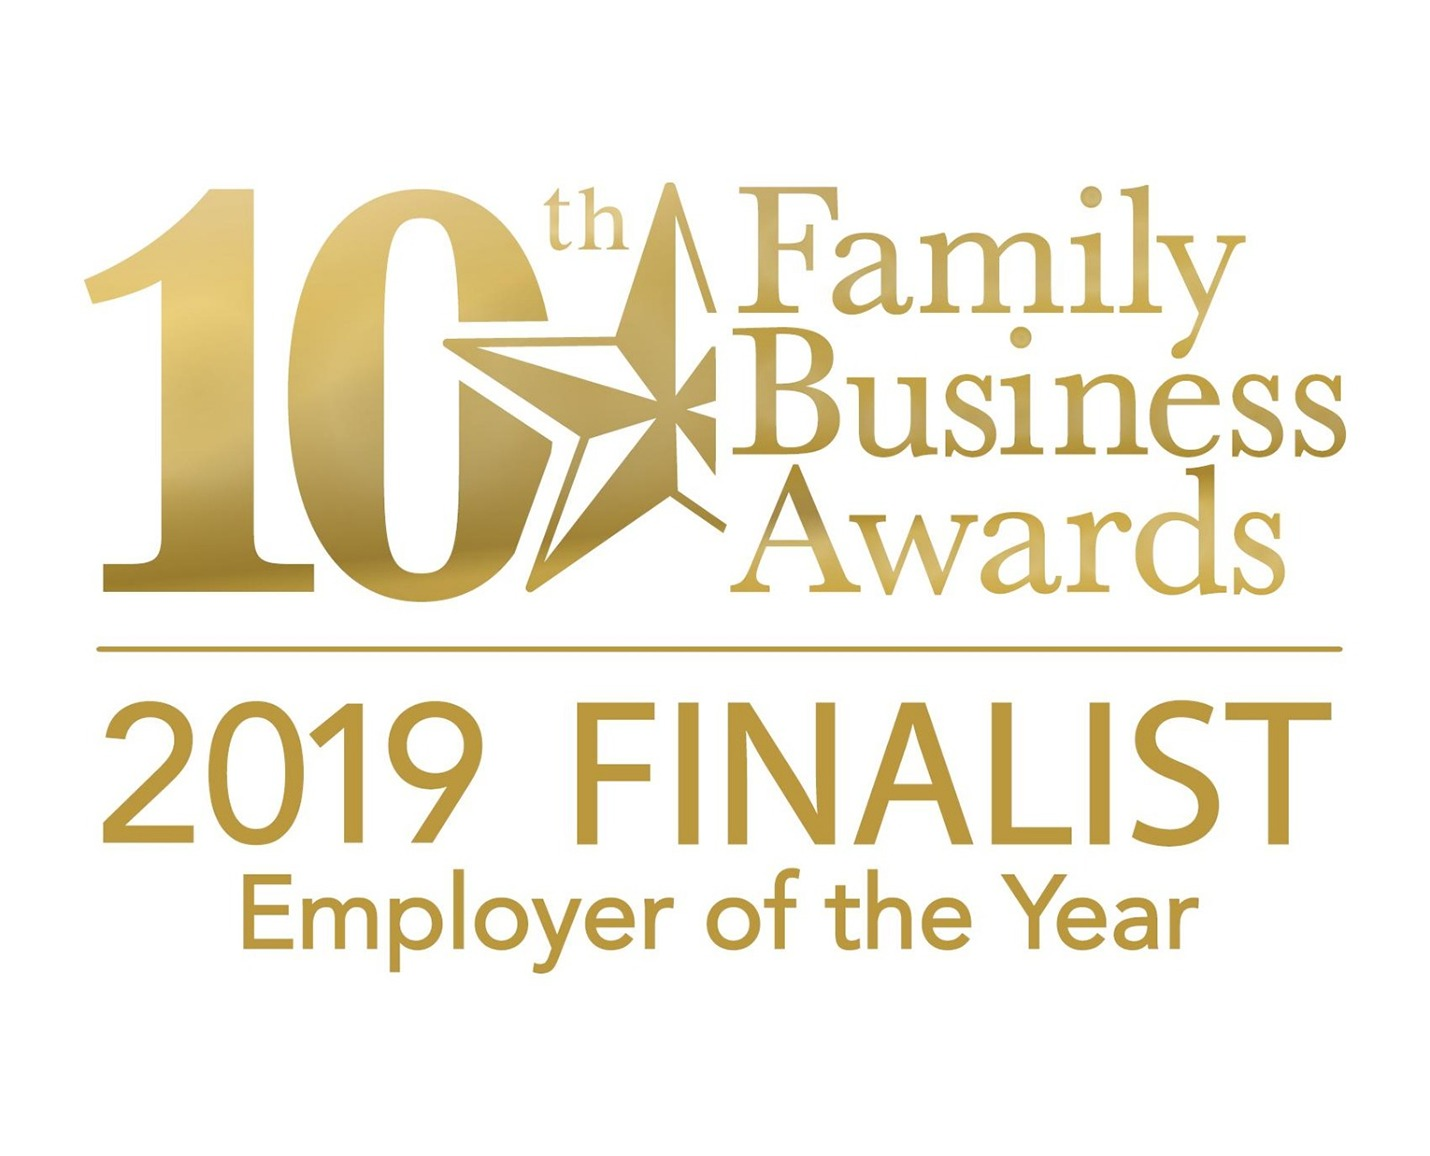 Lobina Family Business Awards Finalist Employer of the Year